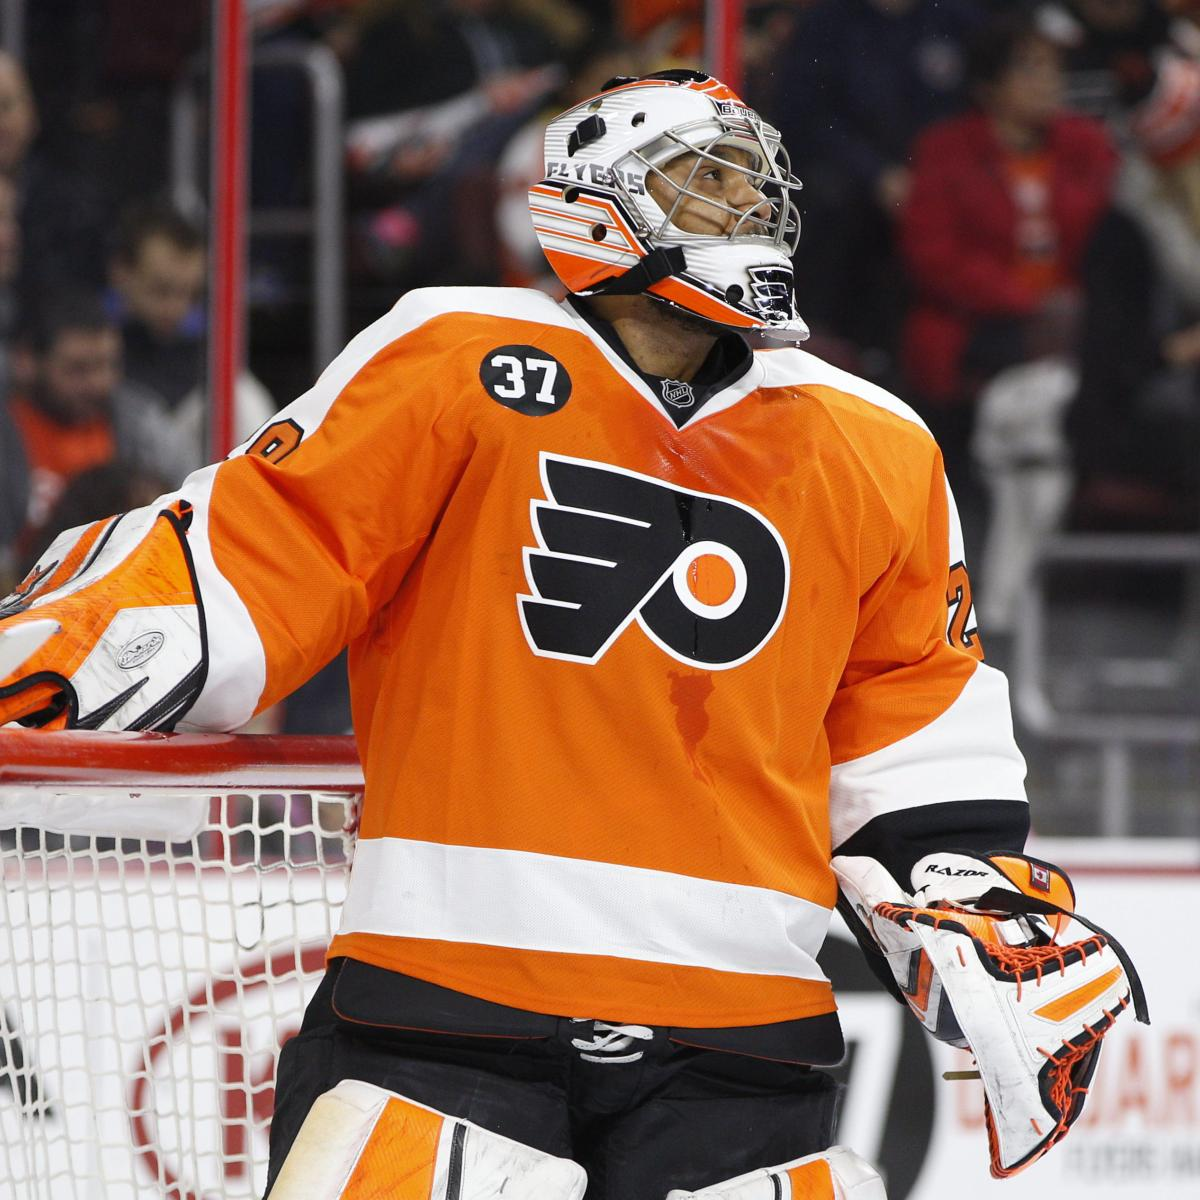 Report: Ray Emery Arrested in Sept. for Assaulting Keshia Chante with Weapon